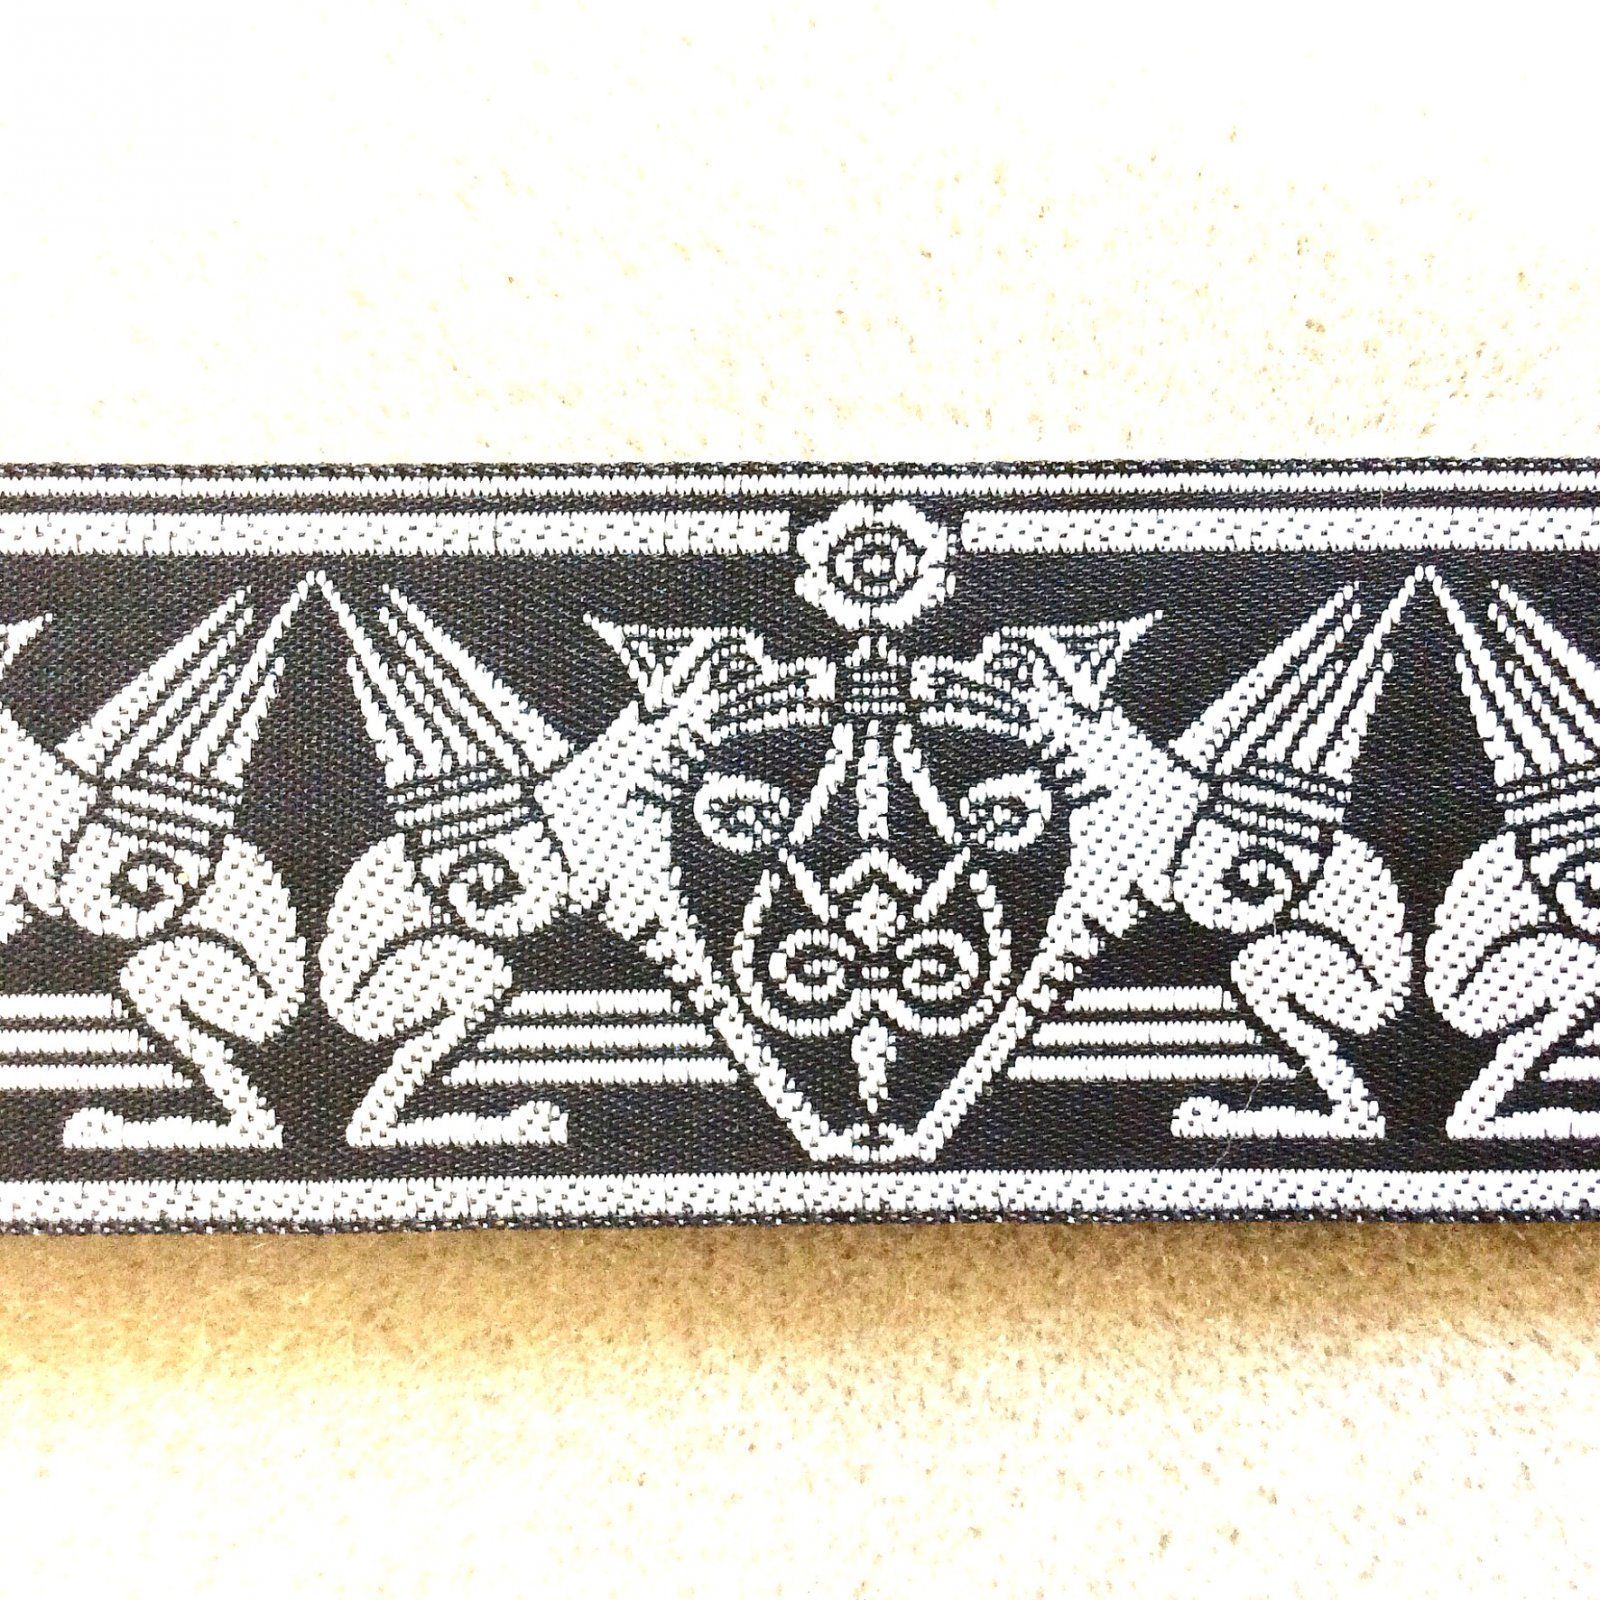 Celtic Knot Griffin  Modern Ribbon Trim 1.25 wide Woven Embroidered TRIM014